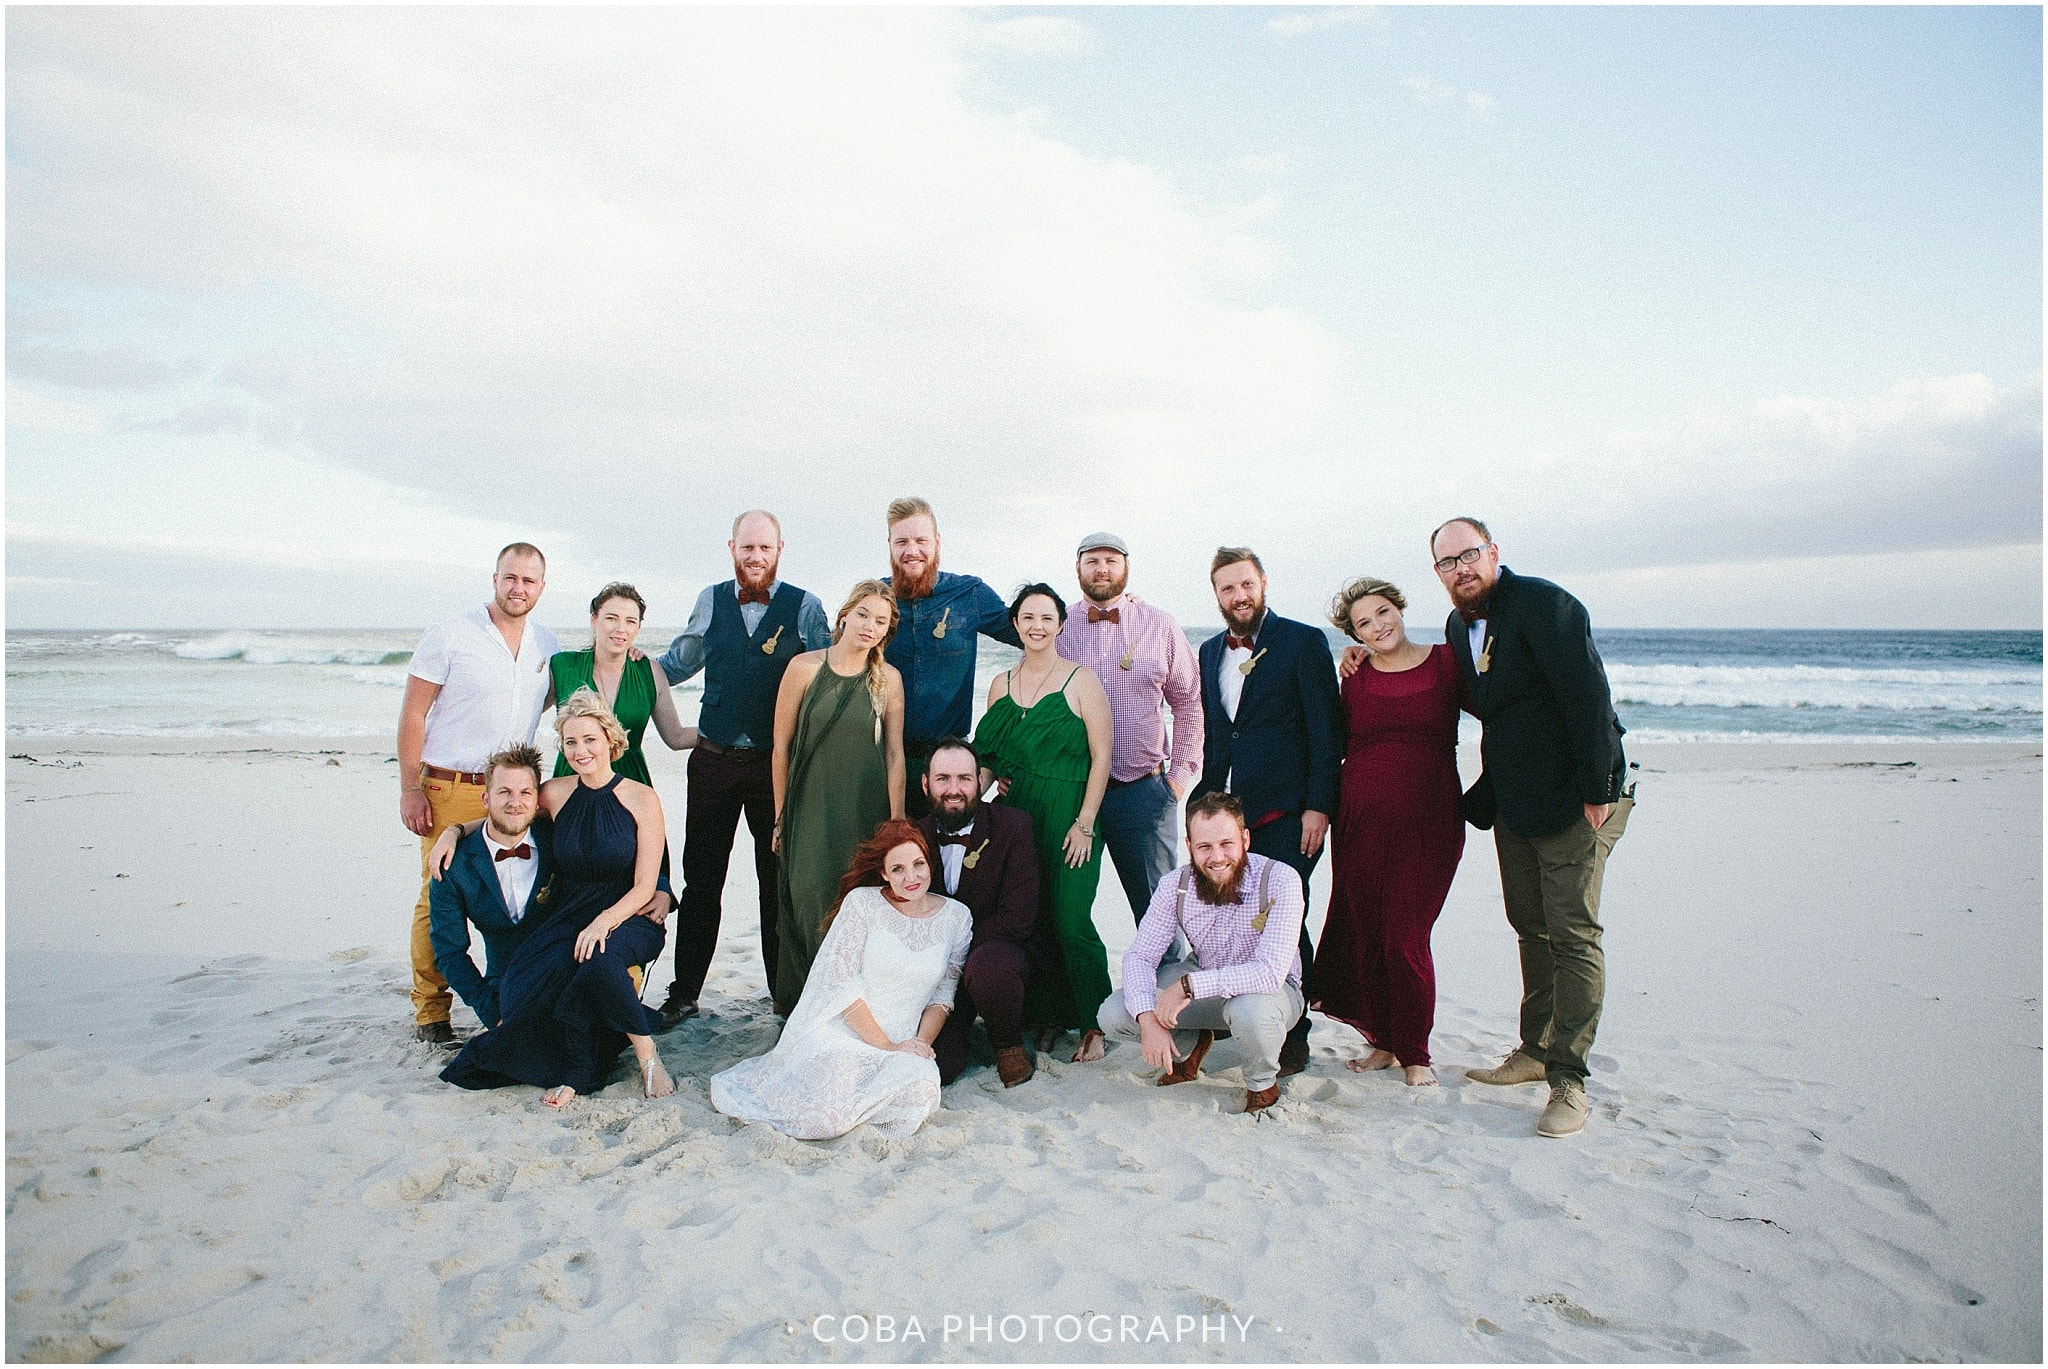 Conrad & Mareli - Bohemian beach wedding - (6)